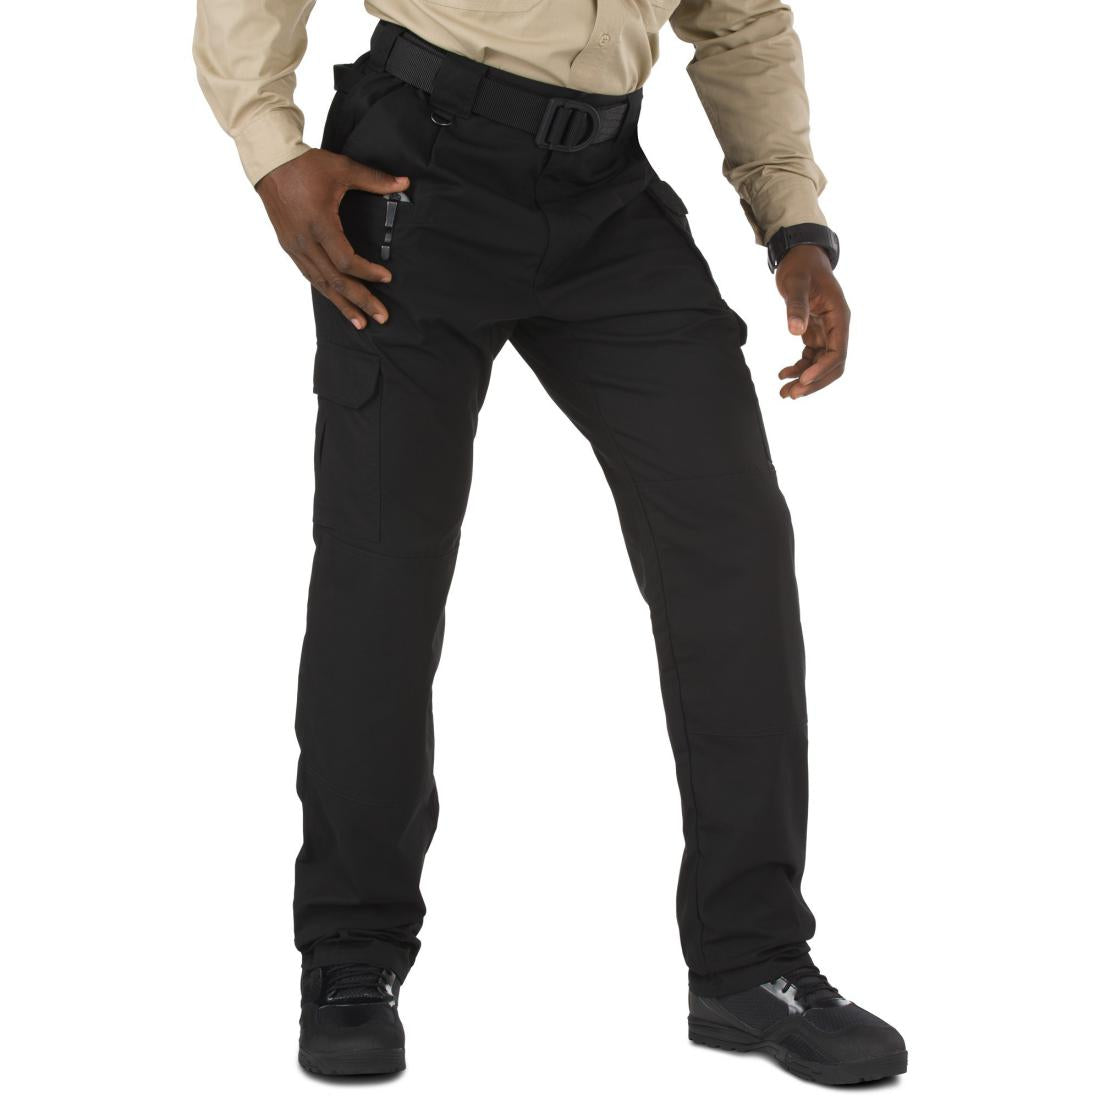 5.11 Tactical 74273 Men's Tactical Pro Pant Black